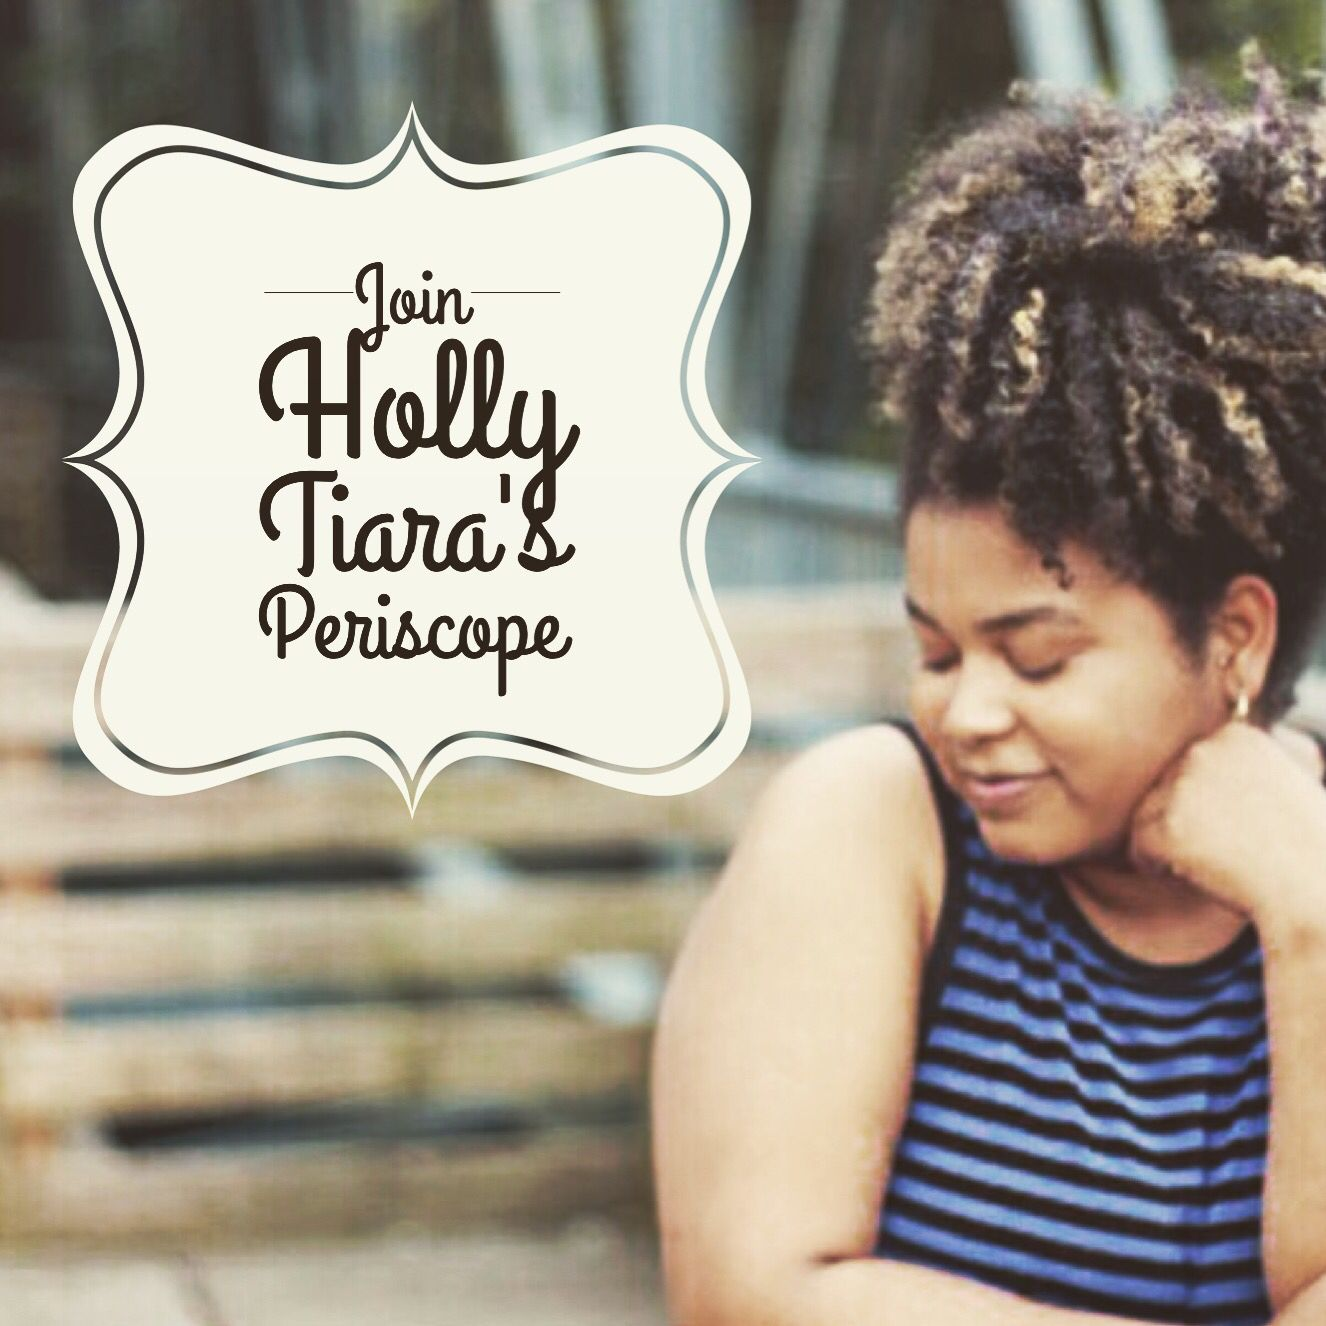 The awesome & beautiful @hollytiara surprised us with a feature on her #Periscope with some of our No'Kyem Products. Make sure you go view and connect with her also! She is just awesome! #TeamJesus #MotherNaturesGiftToYou #Beautiful #beauty  #life #bloggers #vloggers  #TeamNoKyem #vlog #hairproducts #naturalhair #kinkycurly #curlyhair #naturalhaircommunity